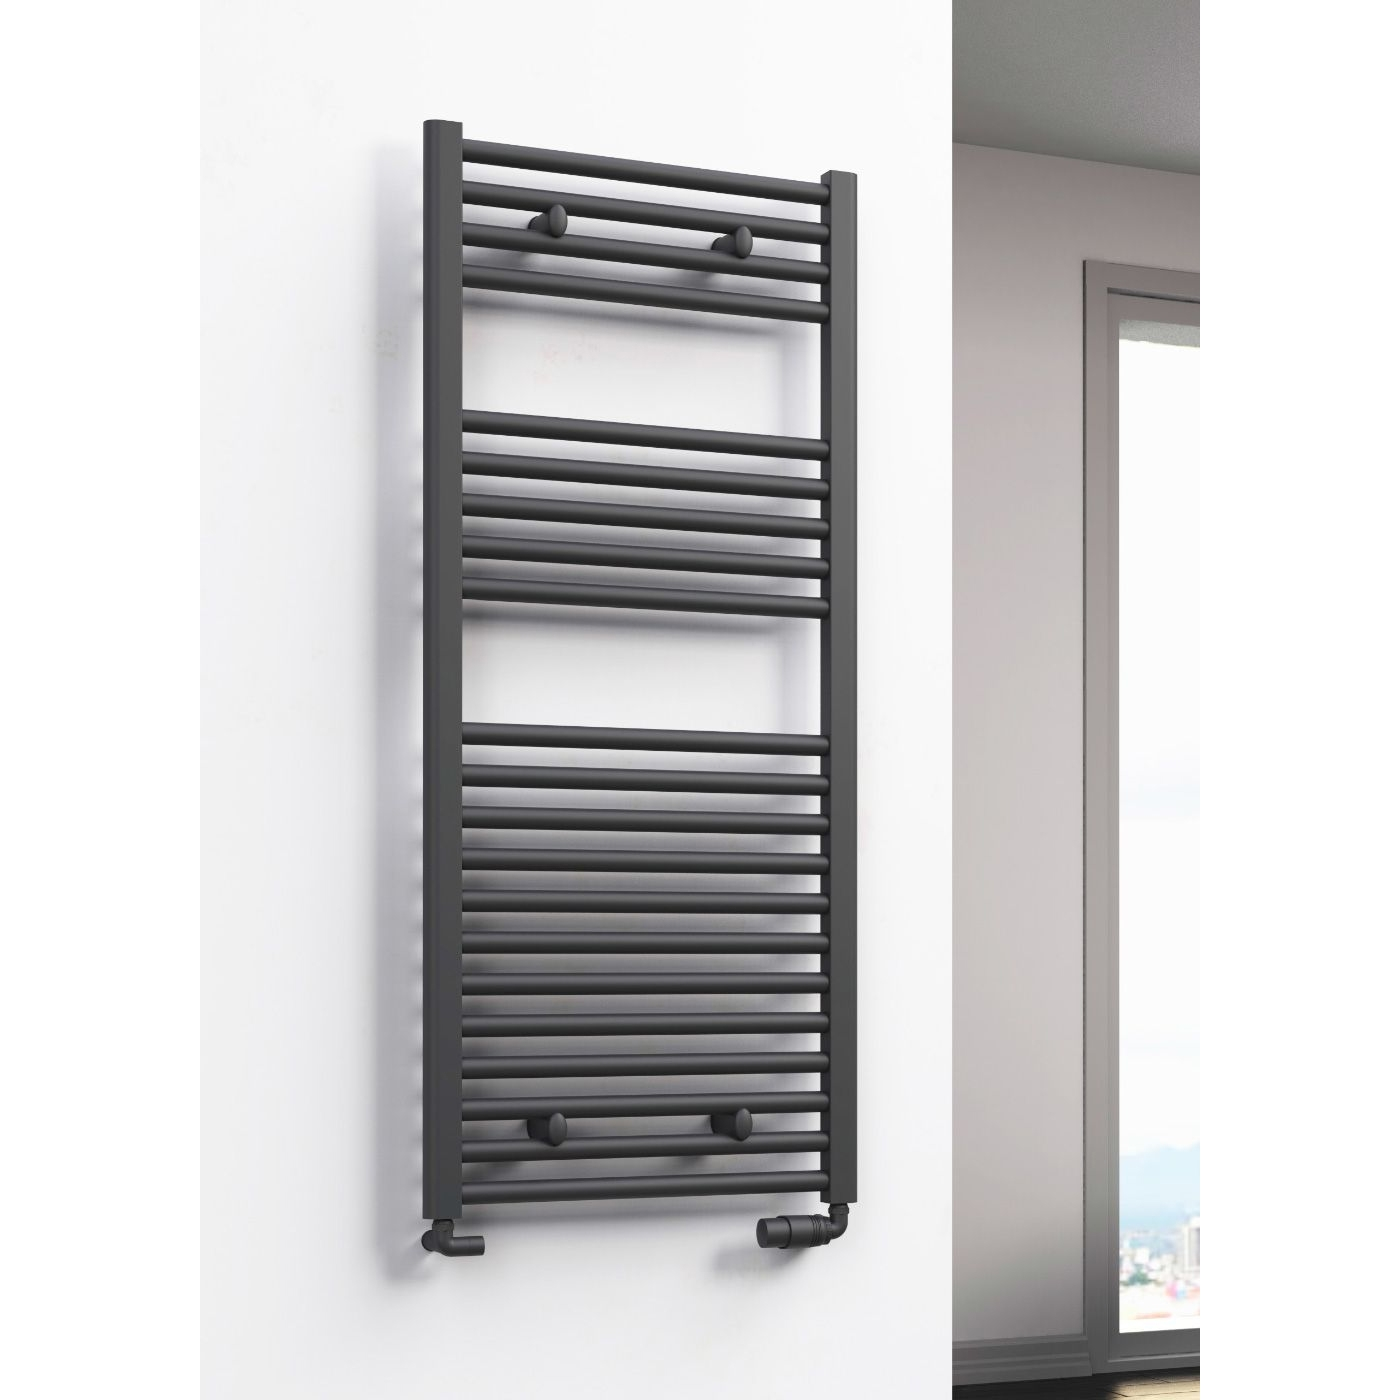 Reina Diva Flat Heated Towel Rail 1200mm H x 600mm W Anthracite